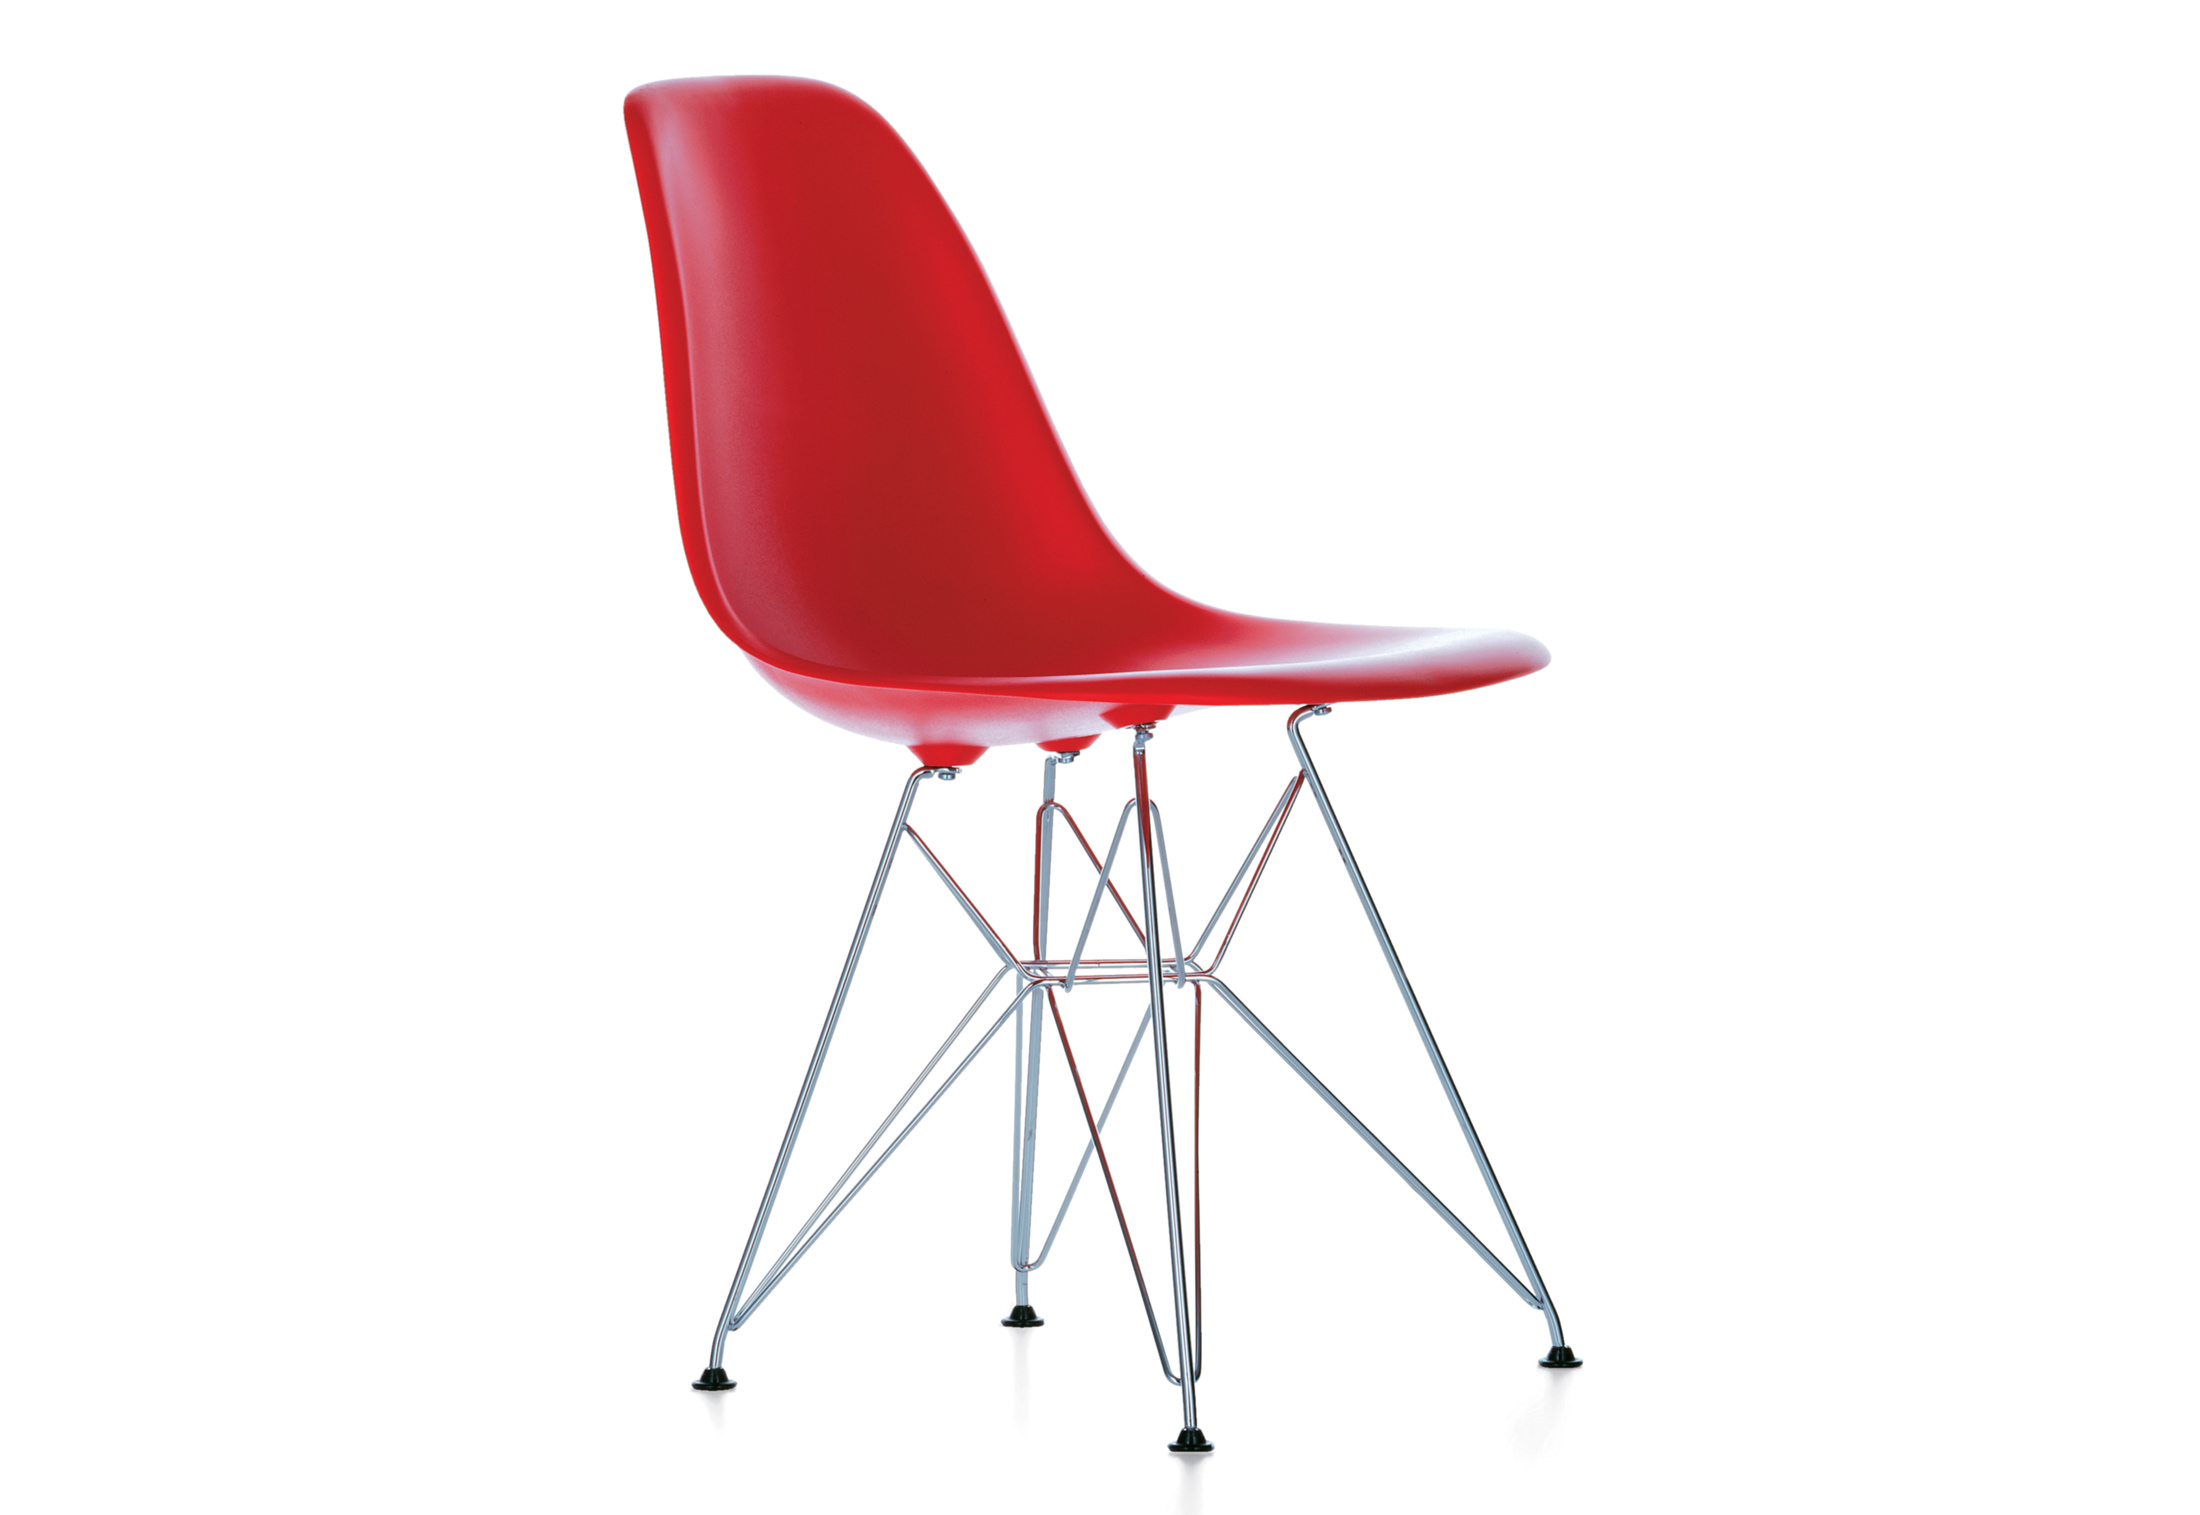 Eames Plastic Side Chair Dsr eames plastic side chair dsr by vitra stylepark